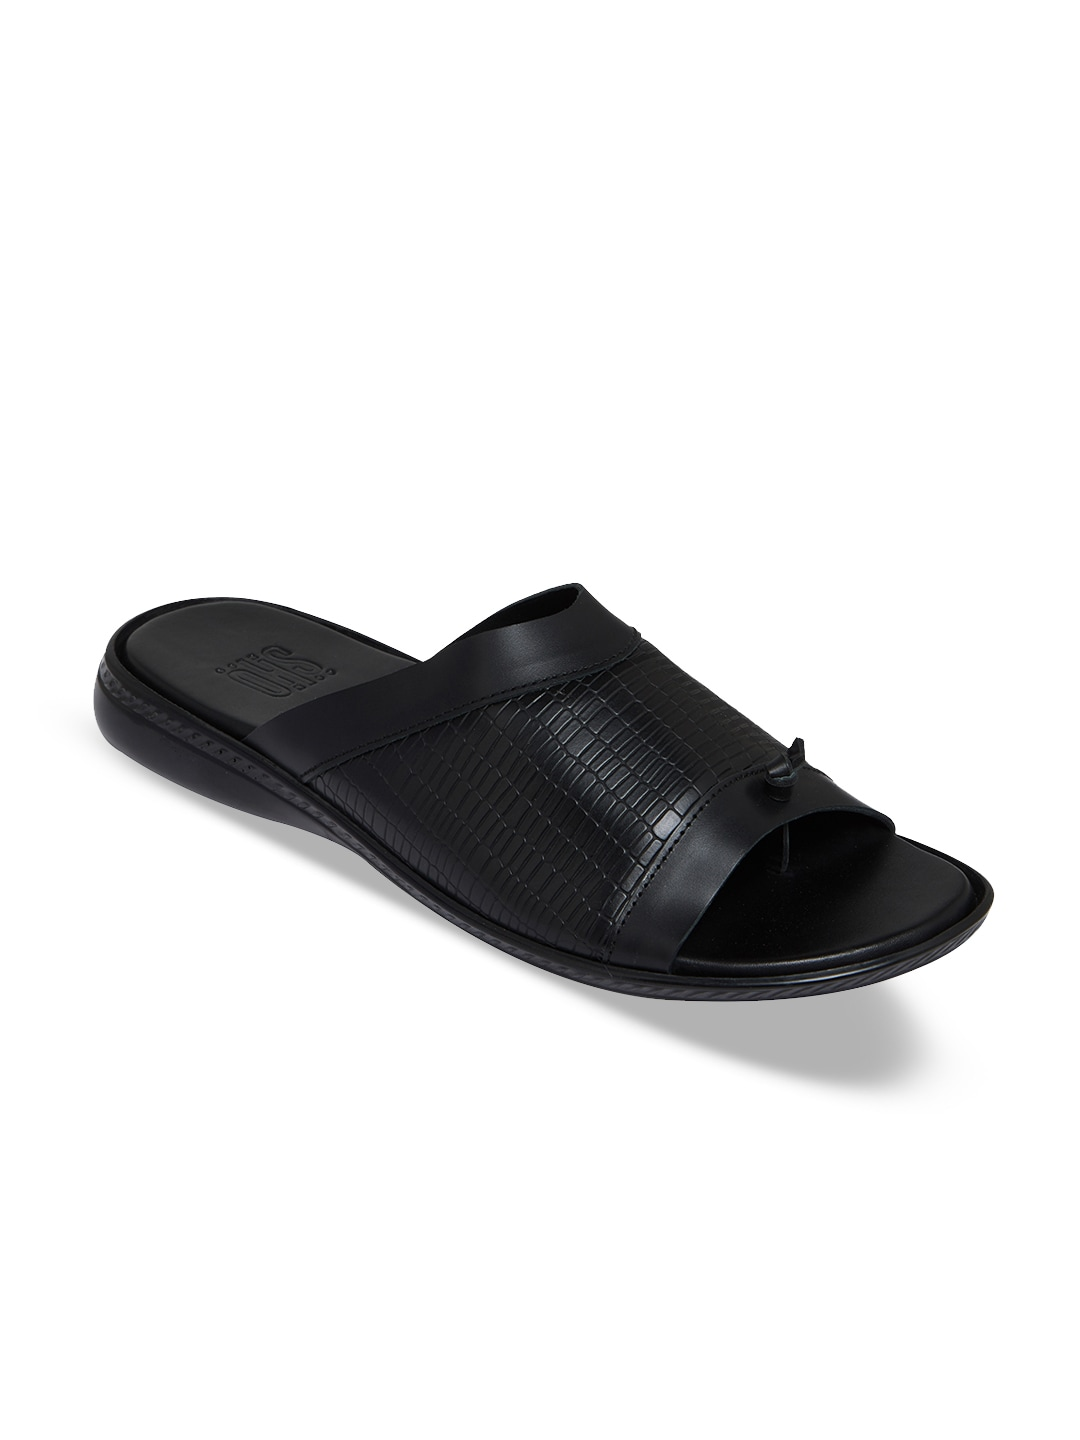 d4a93dff3be78e Sandals For Men - Buy Men Sandals Online in India